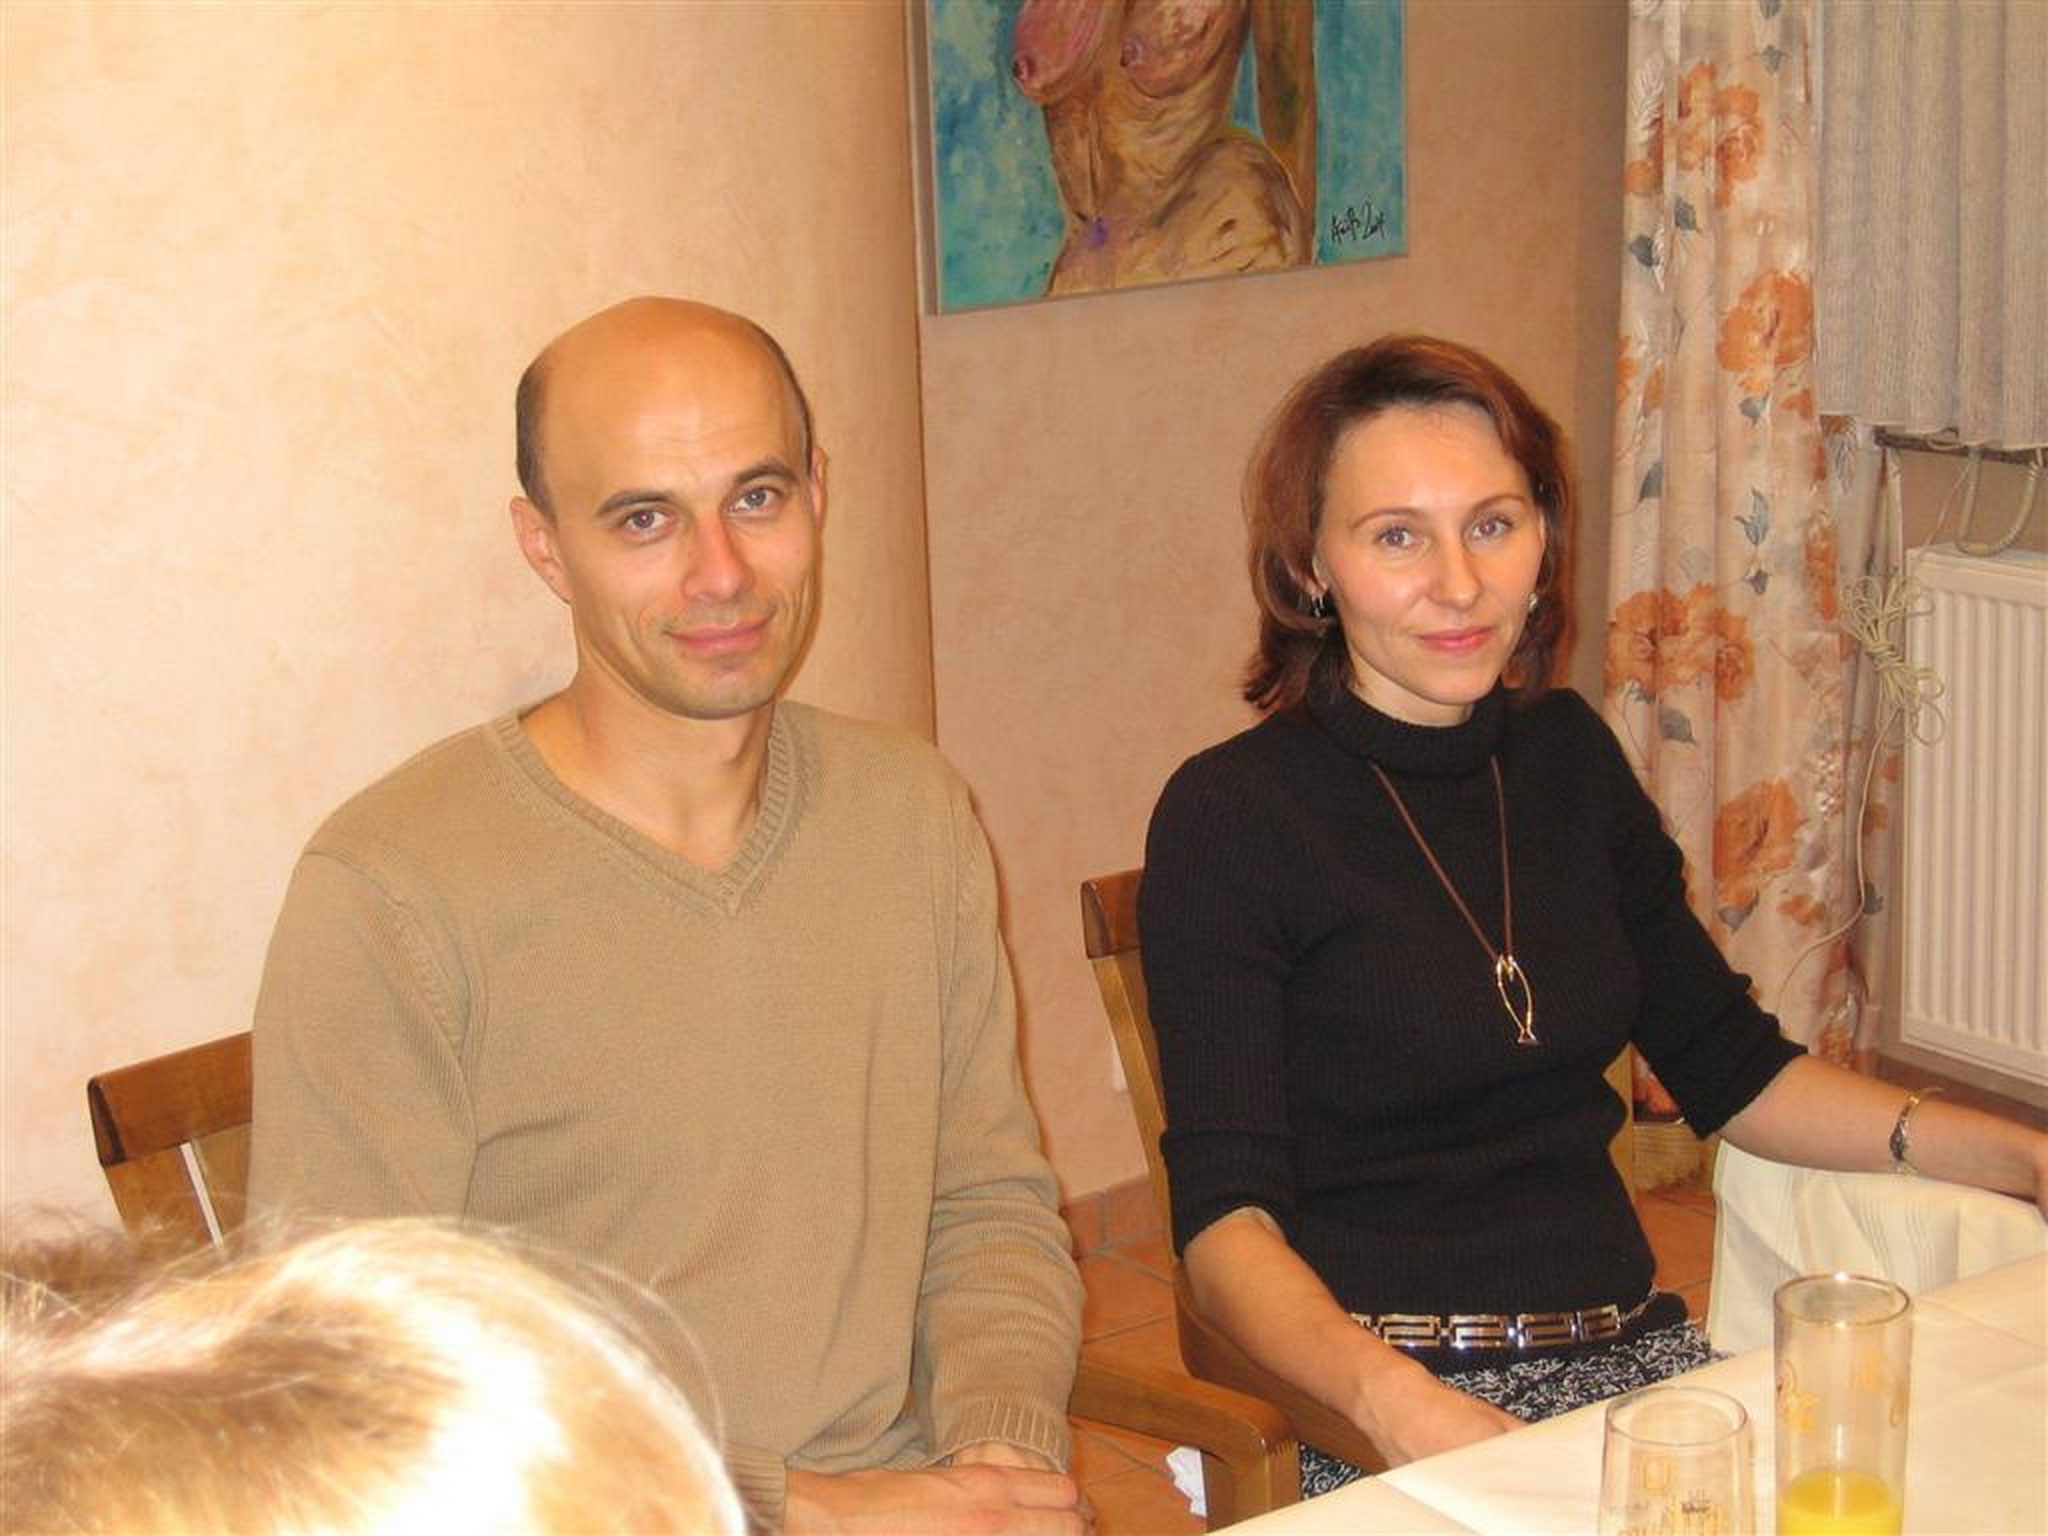 Priit and Inna 2004